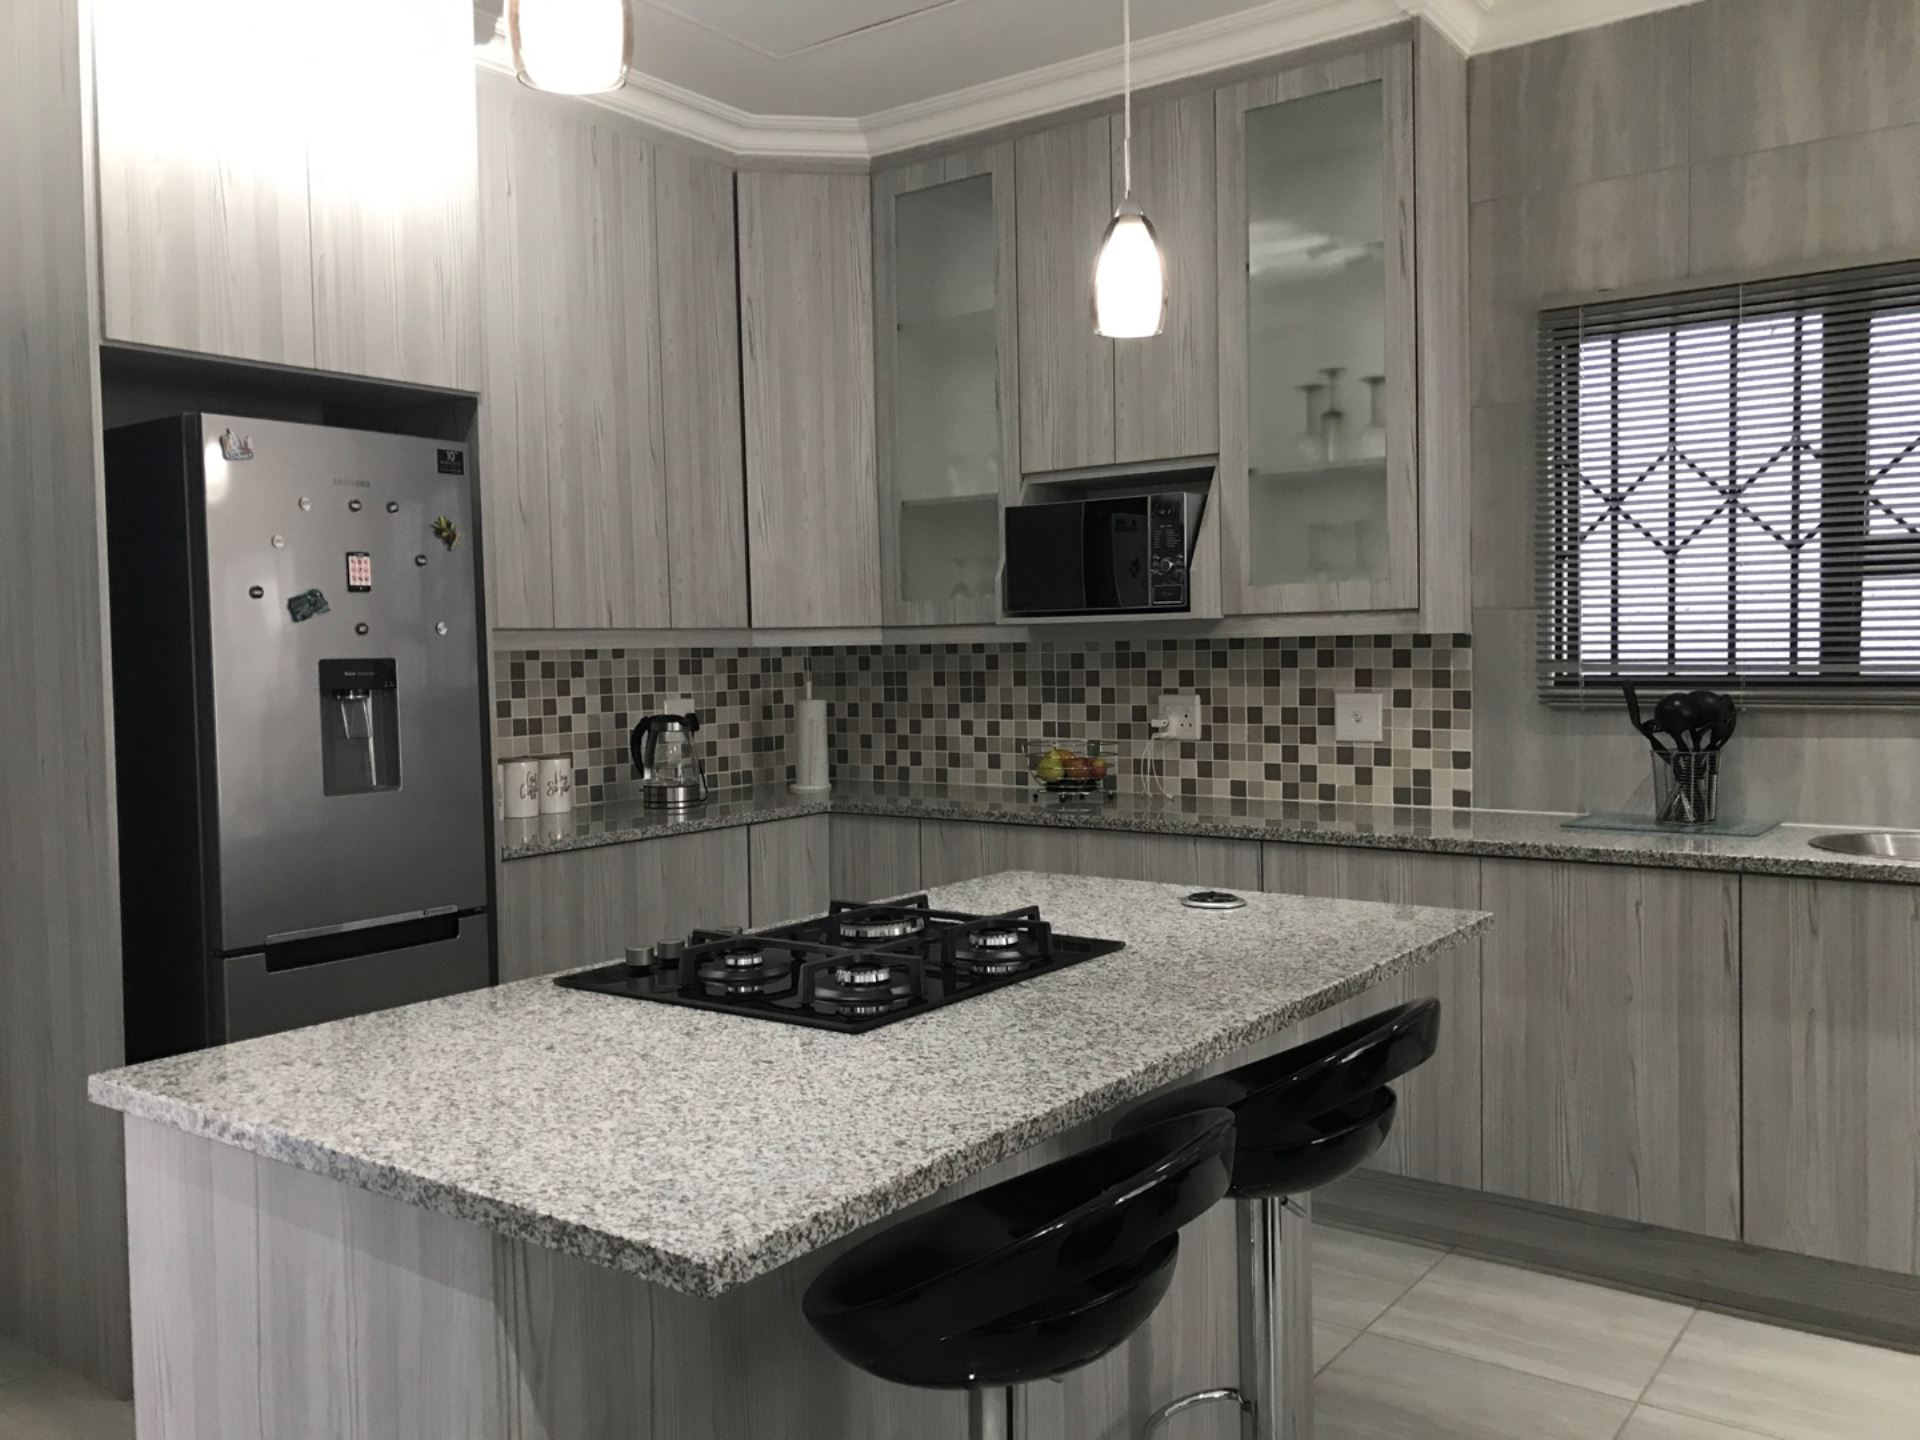 House For Sale in POMONA